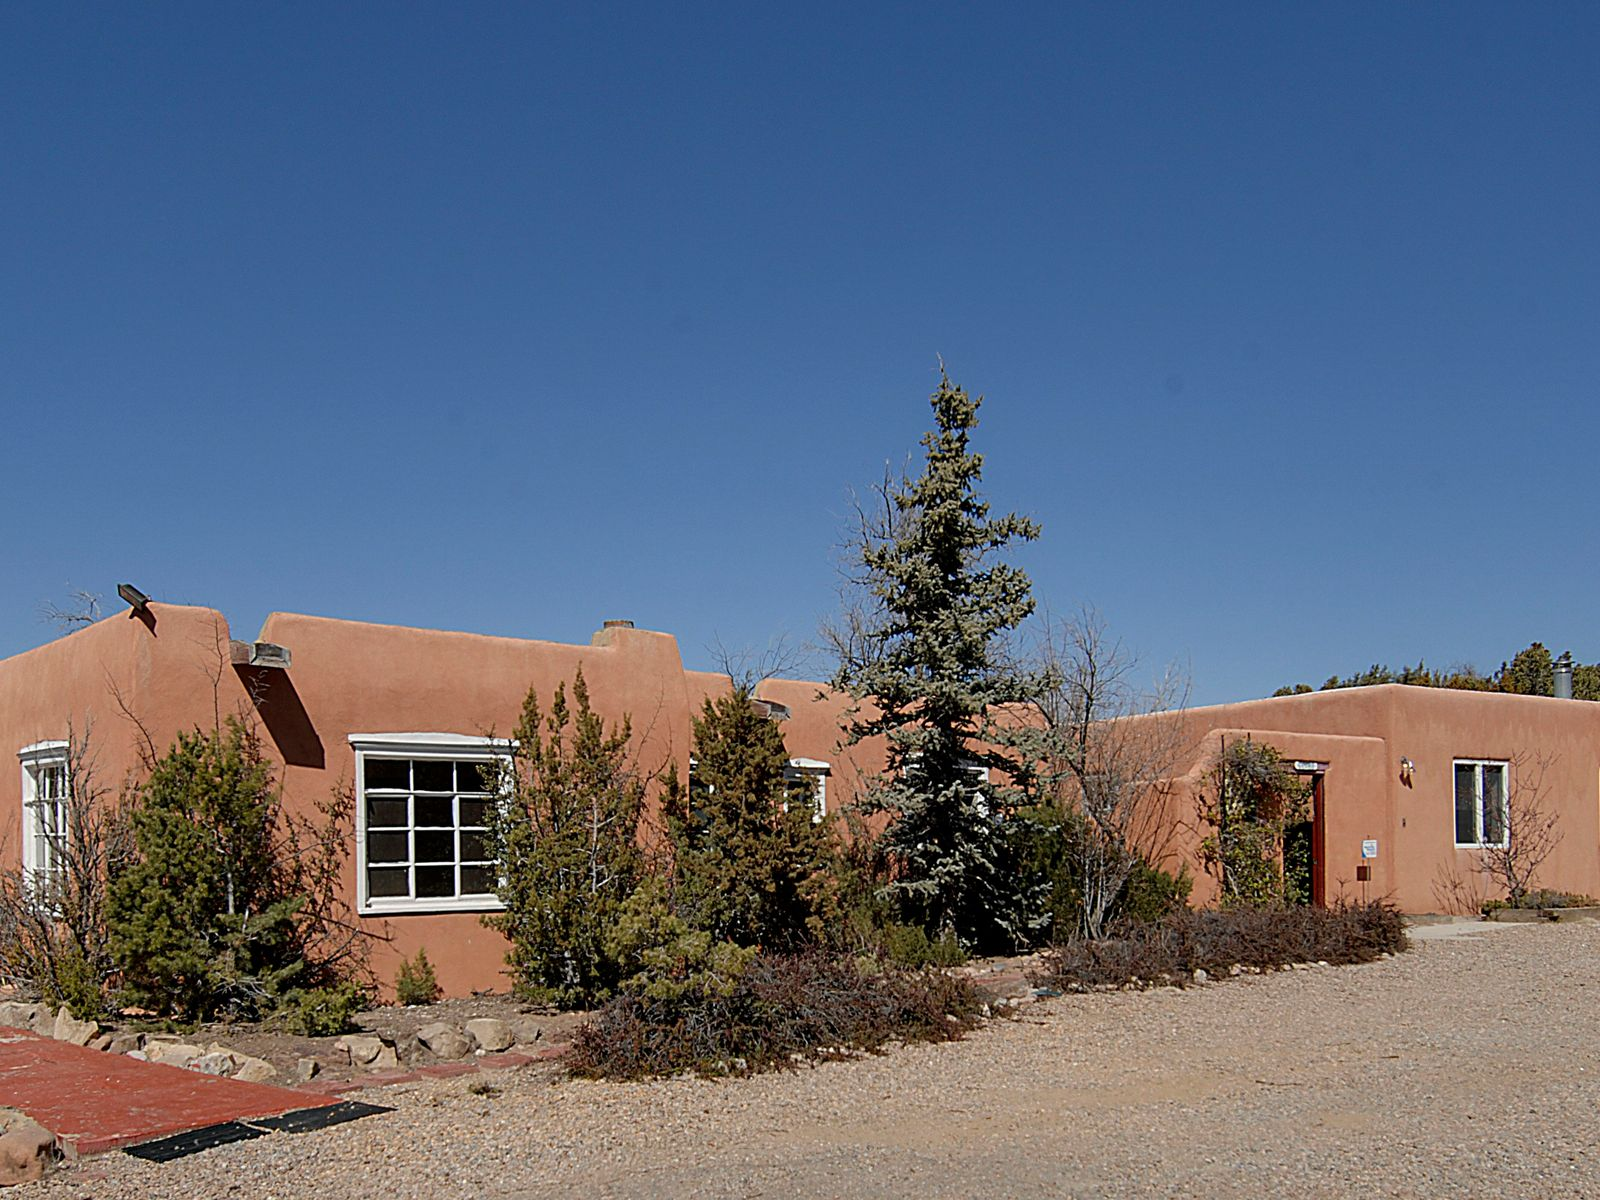 1049 Governor Dempsey, Santa Fe NM Single Family Home - Santa Fe Real Estate